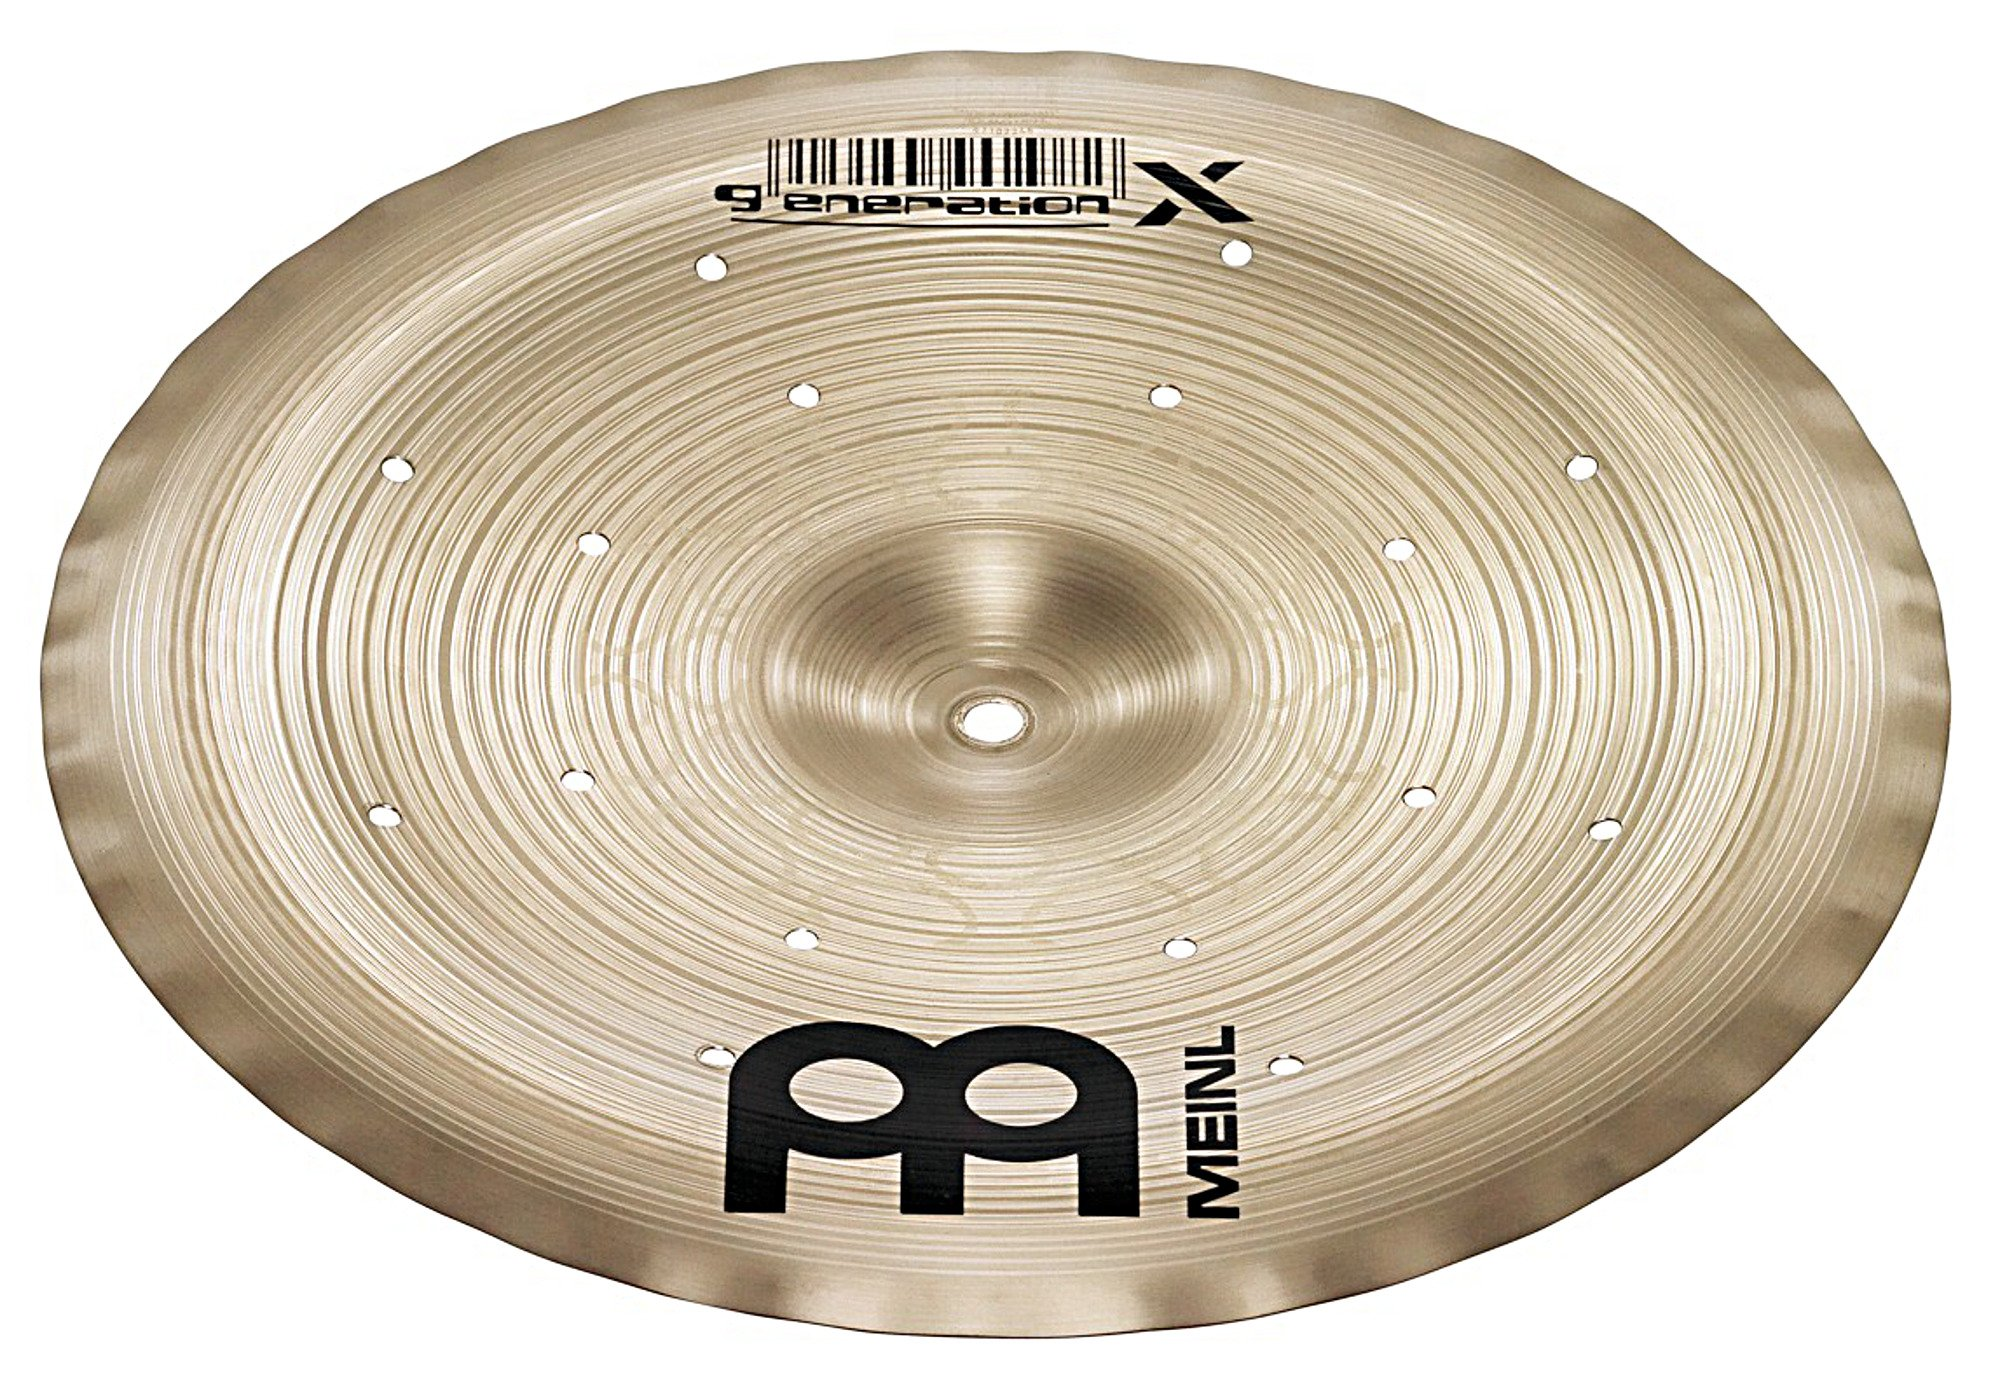 Meinl Cymbals GX-8FCH Generation-X 8-Inch Filter China Cymbal (VIDEO) by Meinl Cymbals